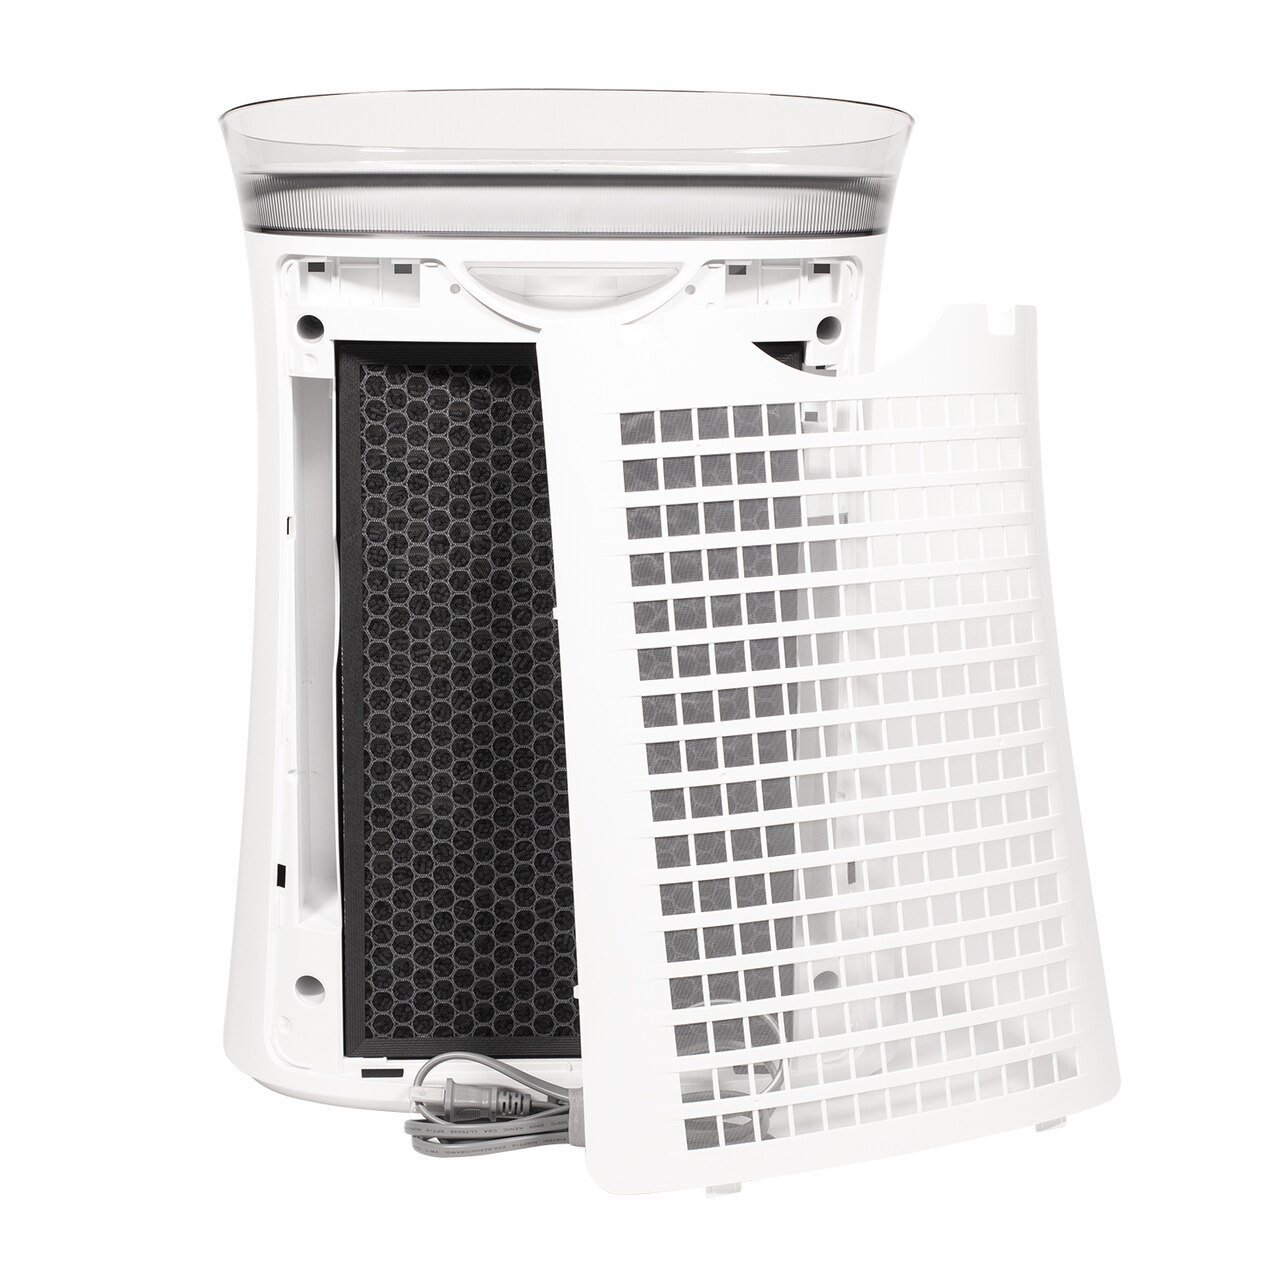 Sharp True HEPA Air Purifier for Medium-Sized Rooms (FPK50UW) – Back View of Three-Stage Filter System